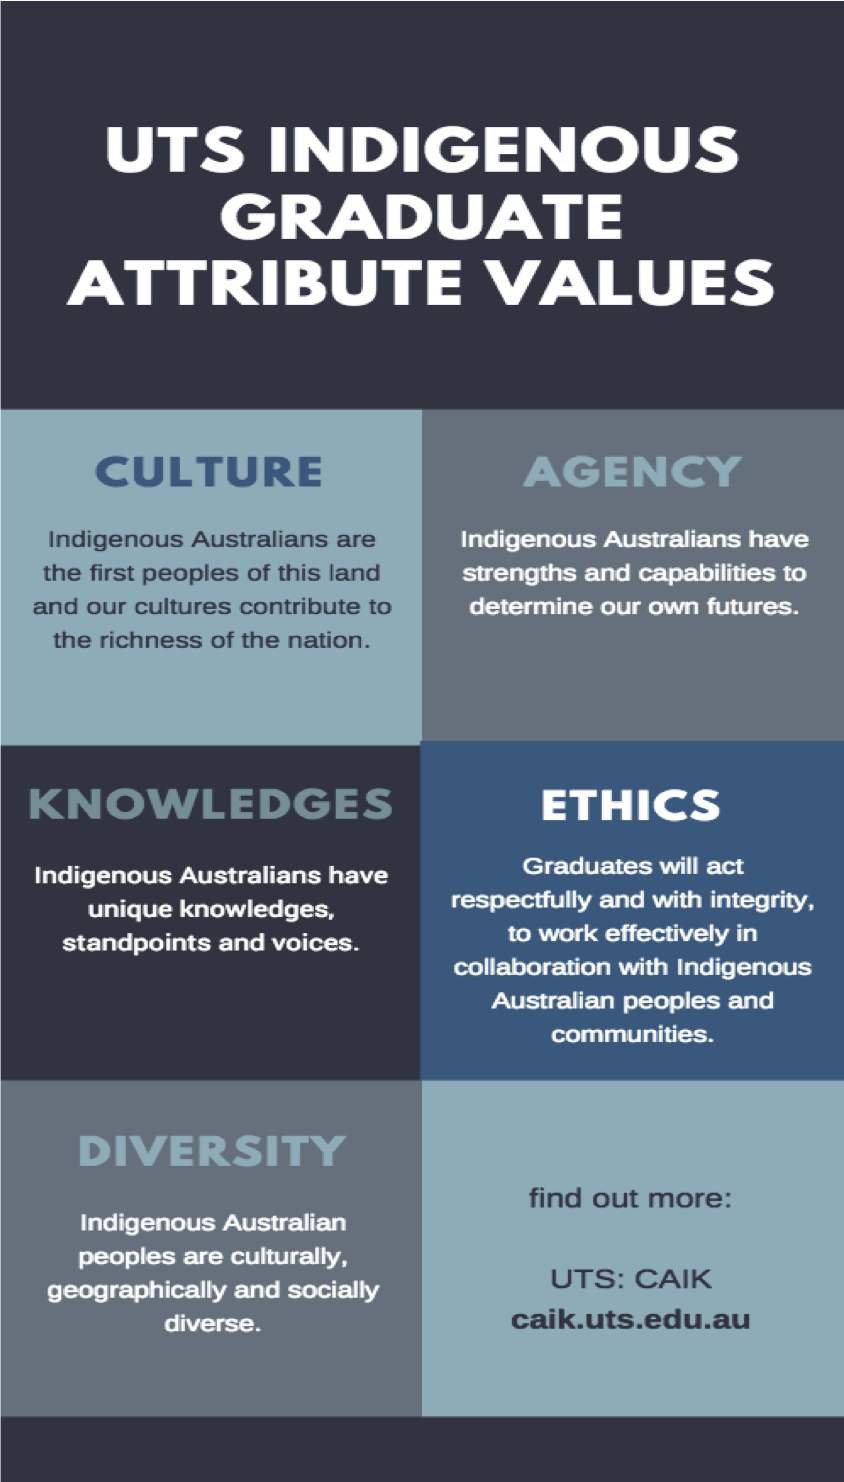 Infographic showing UTS Indigenous Graduate Attribute Values